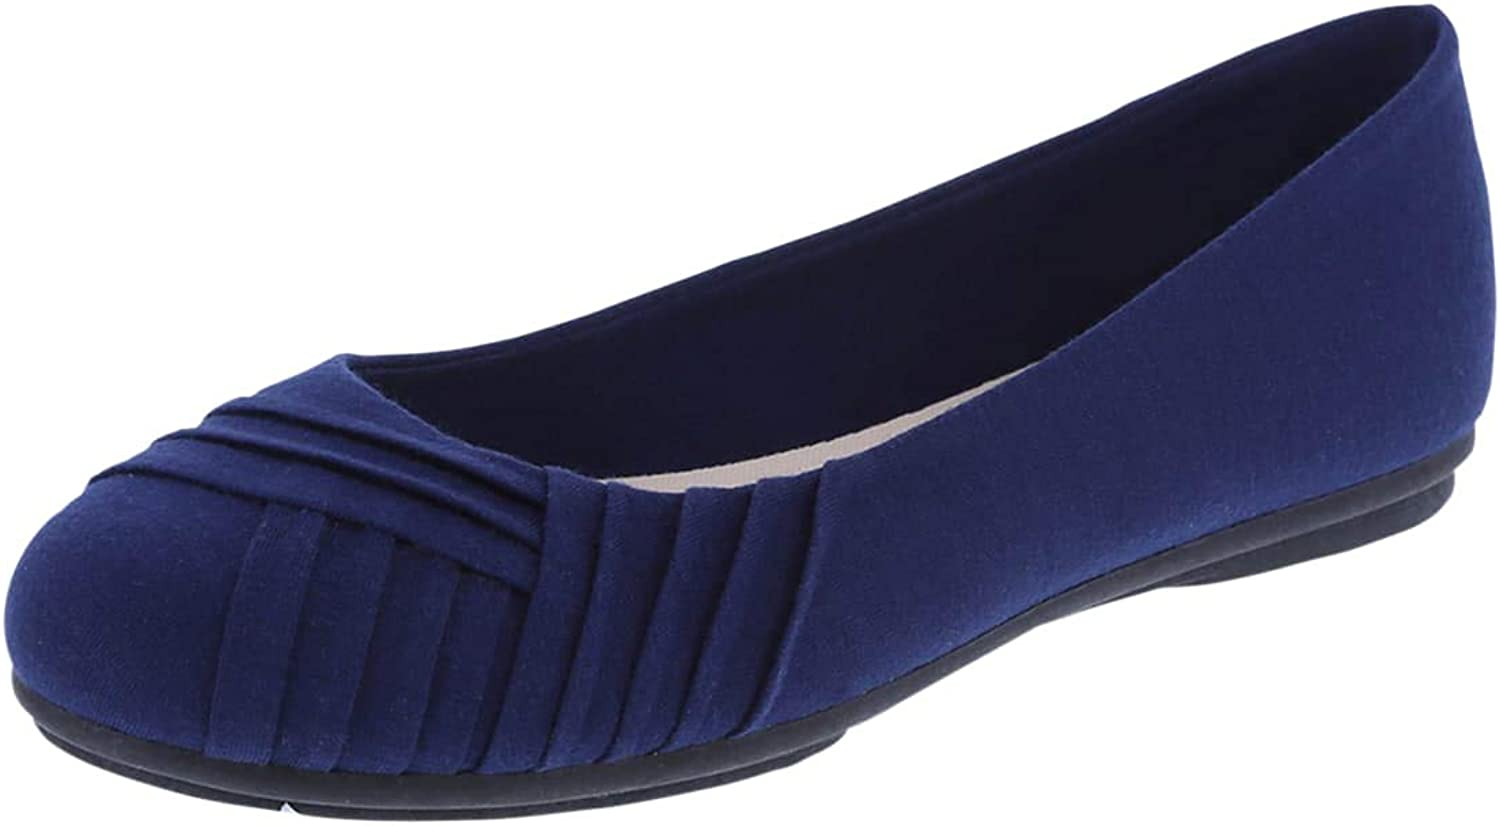 Lower East Side Women's Bree Pleated Flat shoes - Trendy & Stylish with Easy Slip On & Off (Wide and Regular Sizes)